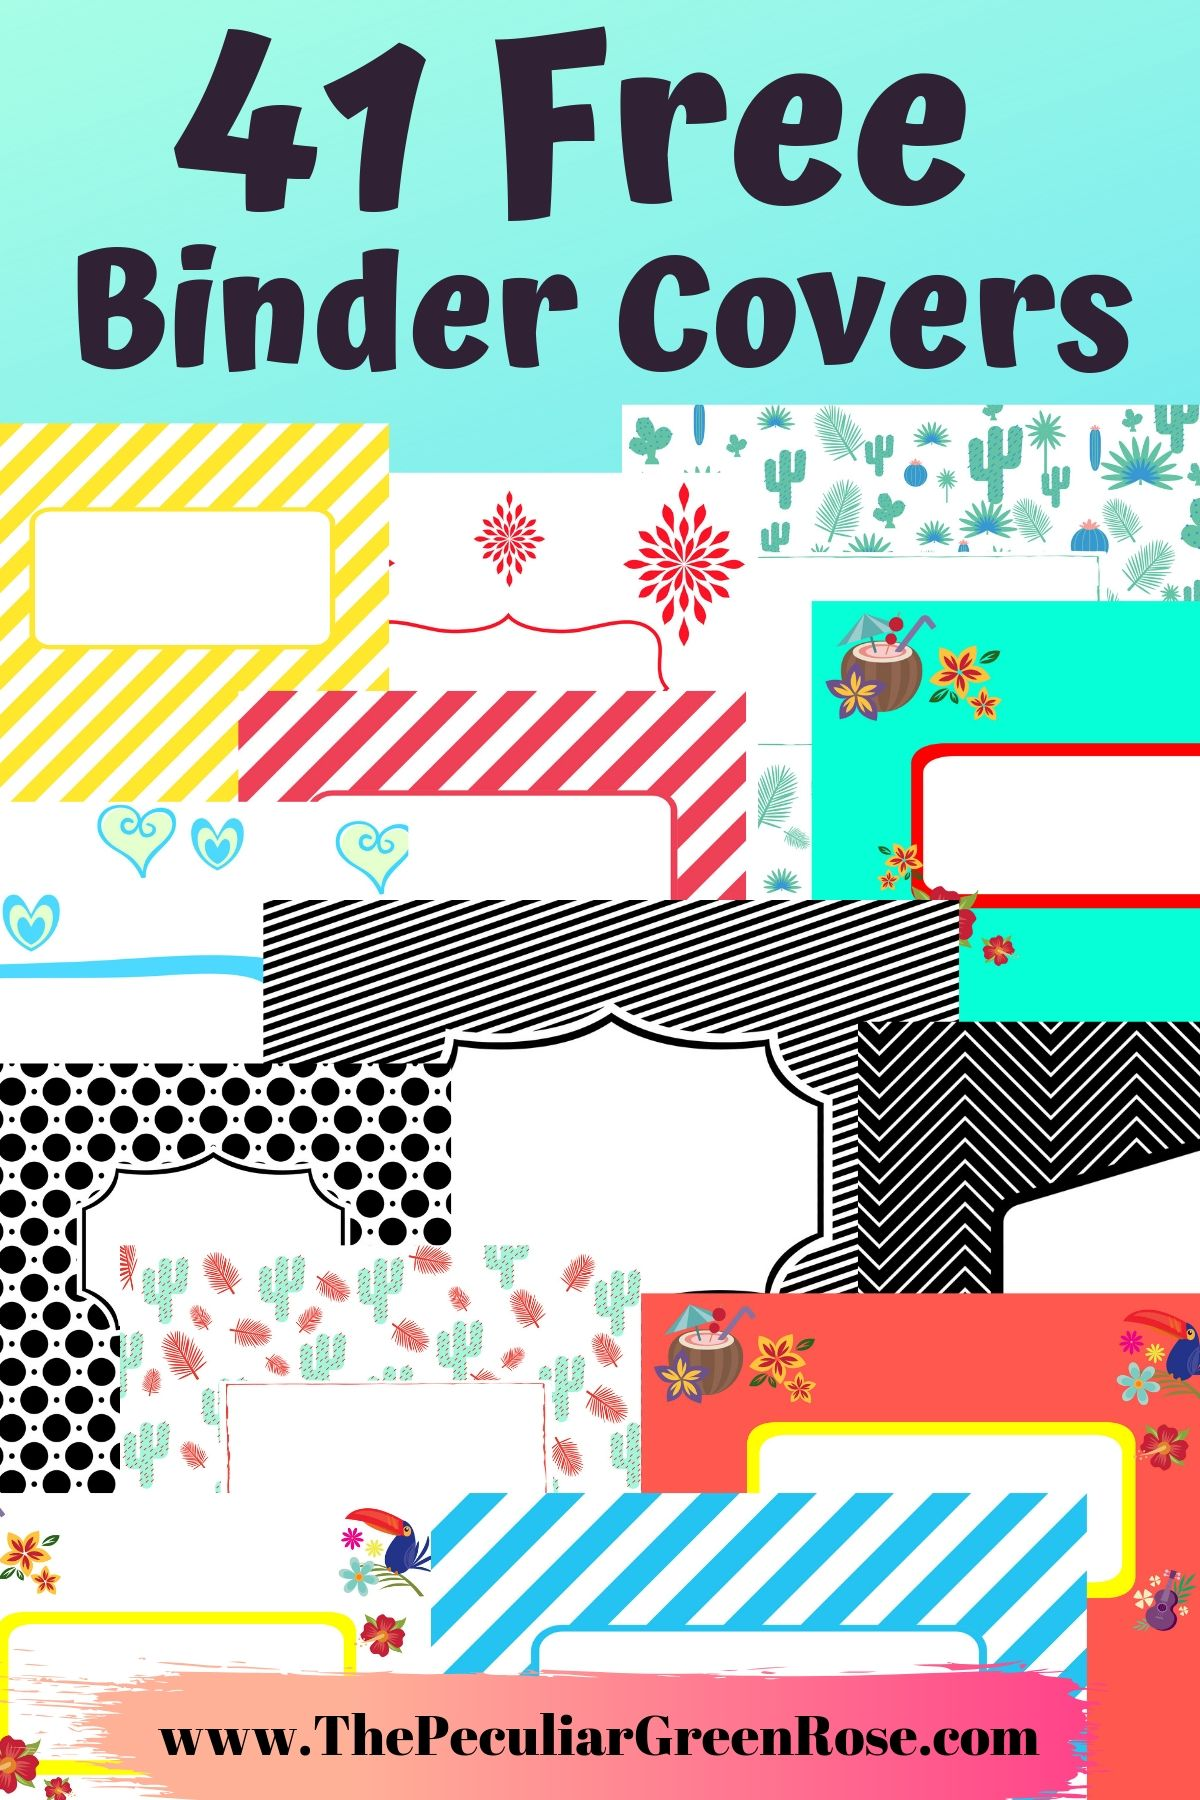 photograph relating to Binder Cover Printable named 41 Absolutely free Printable Binder Addresses - The Unusual Eco-friendly Rose